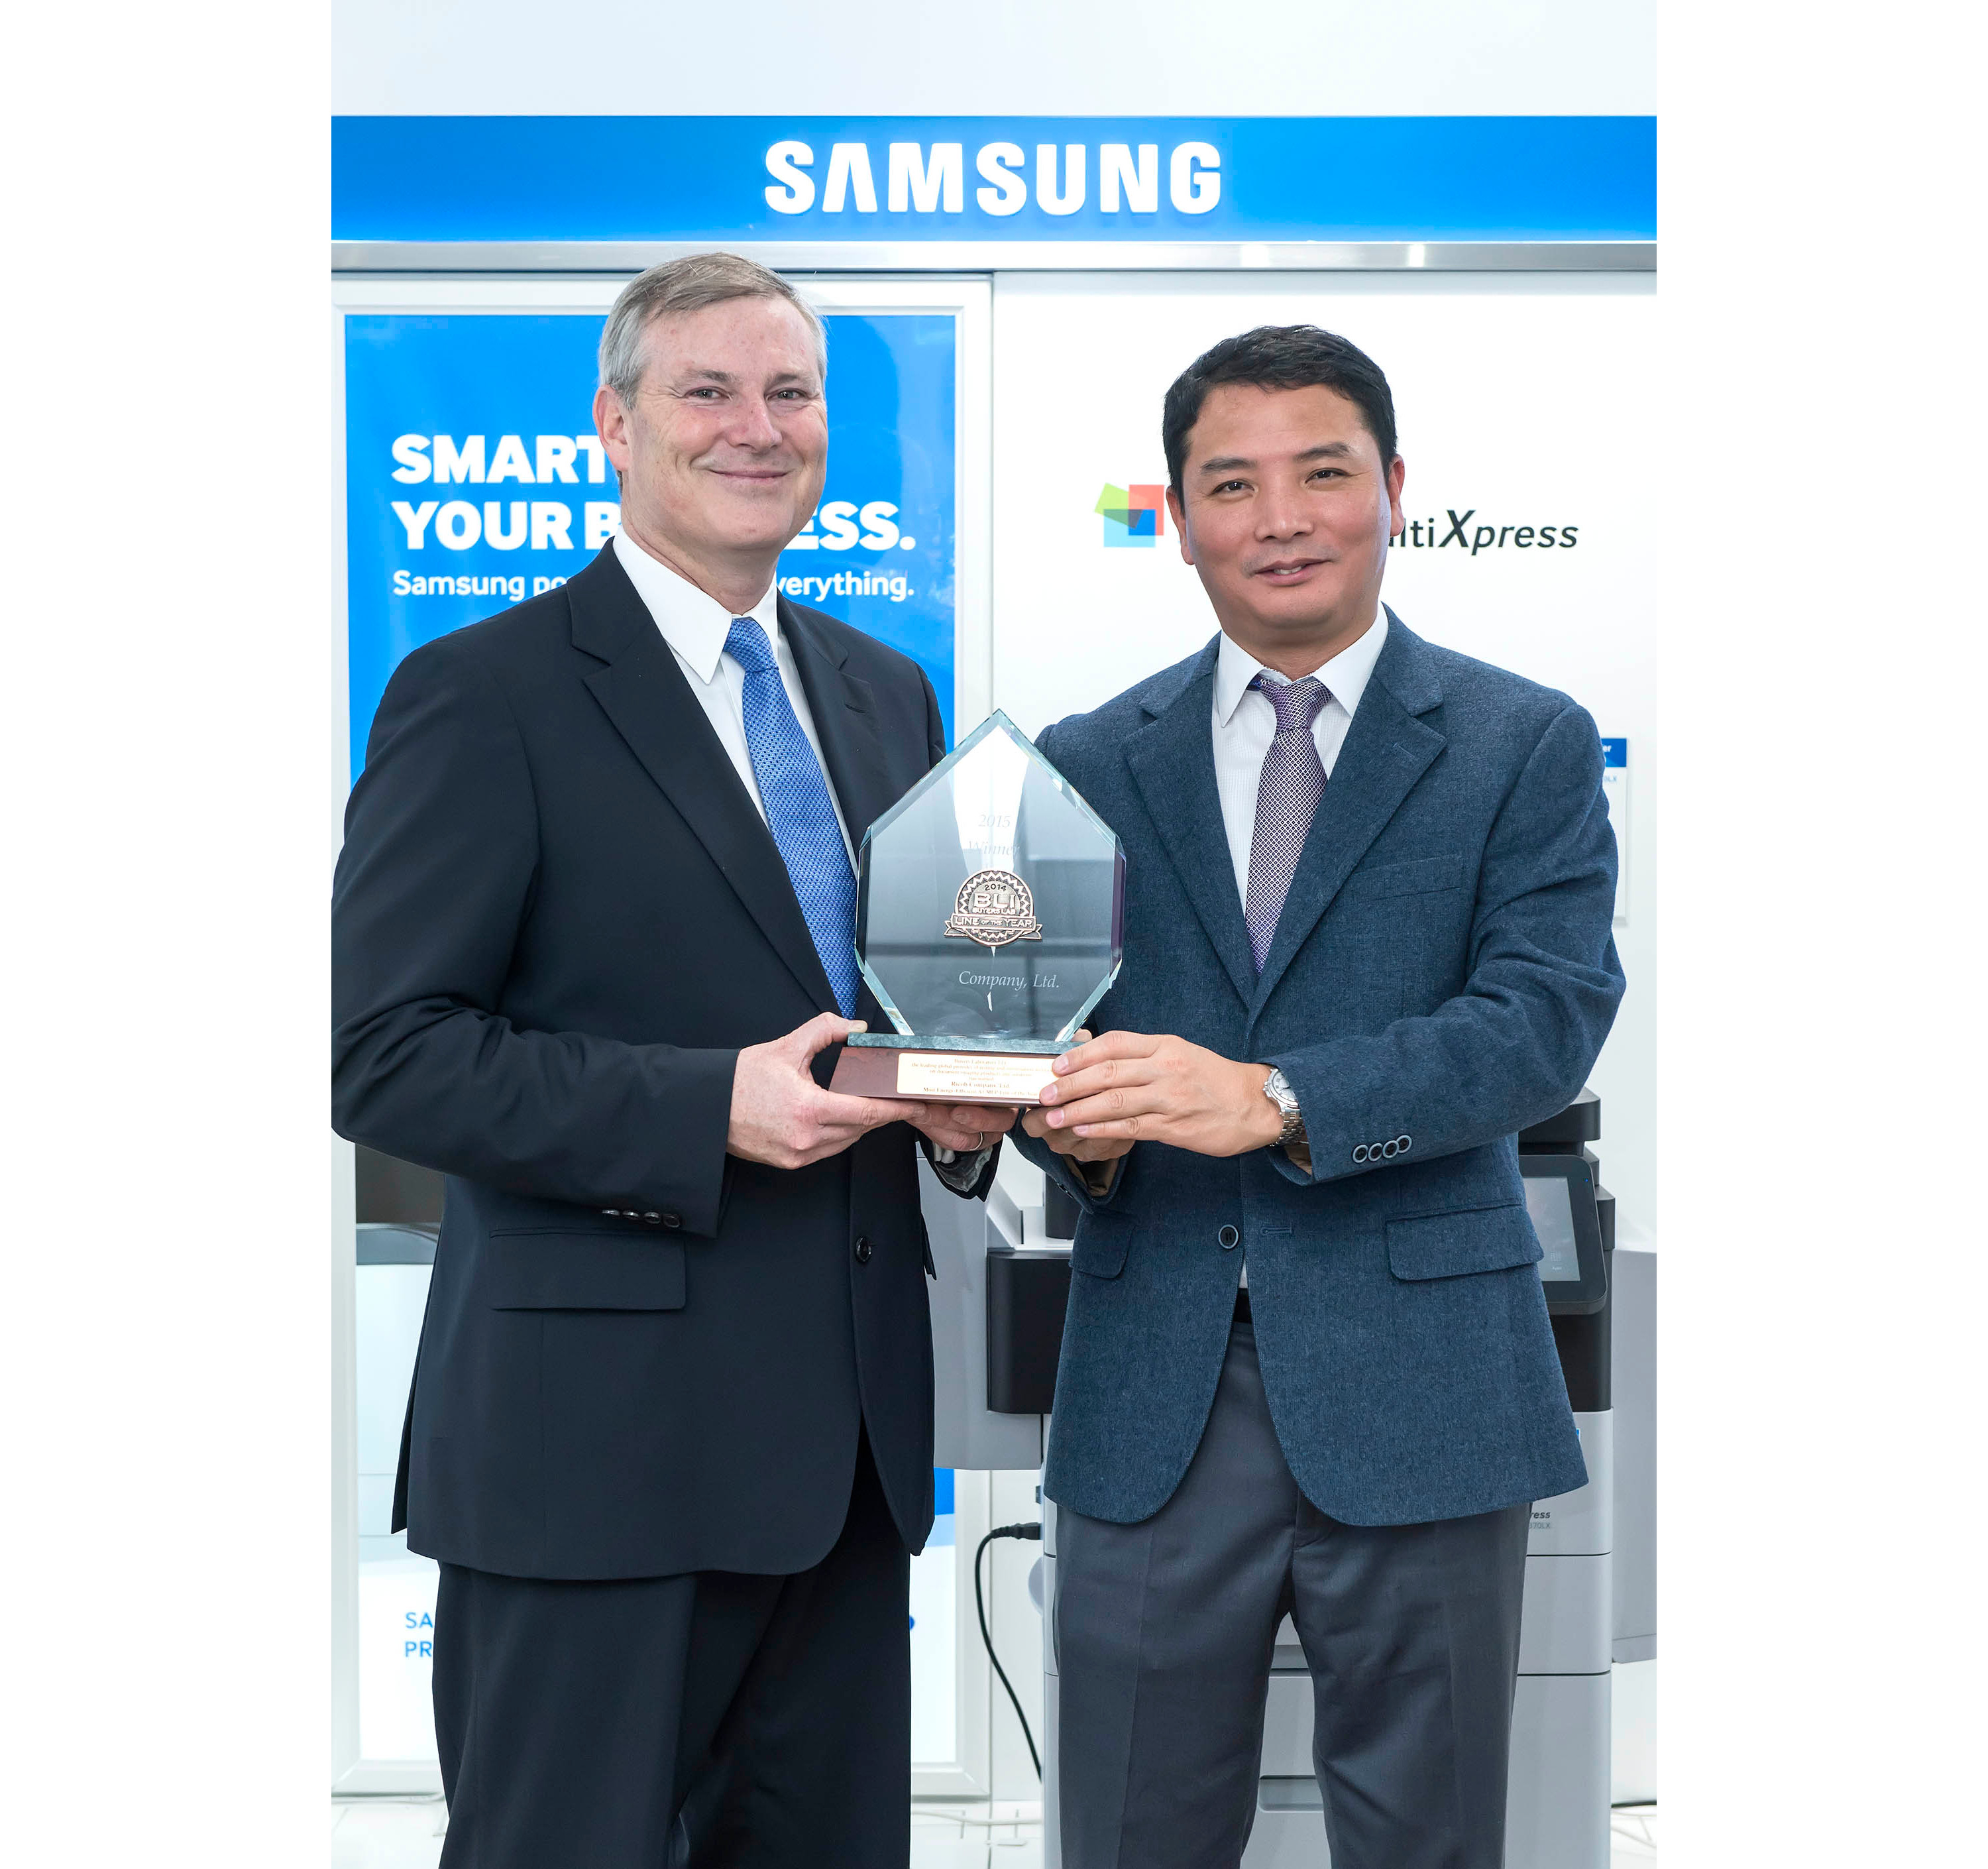 Kim Kwang-suk (right) receives the Best Product Award from Buyers Laboratory's Gerry O'Rourke left).